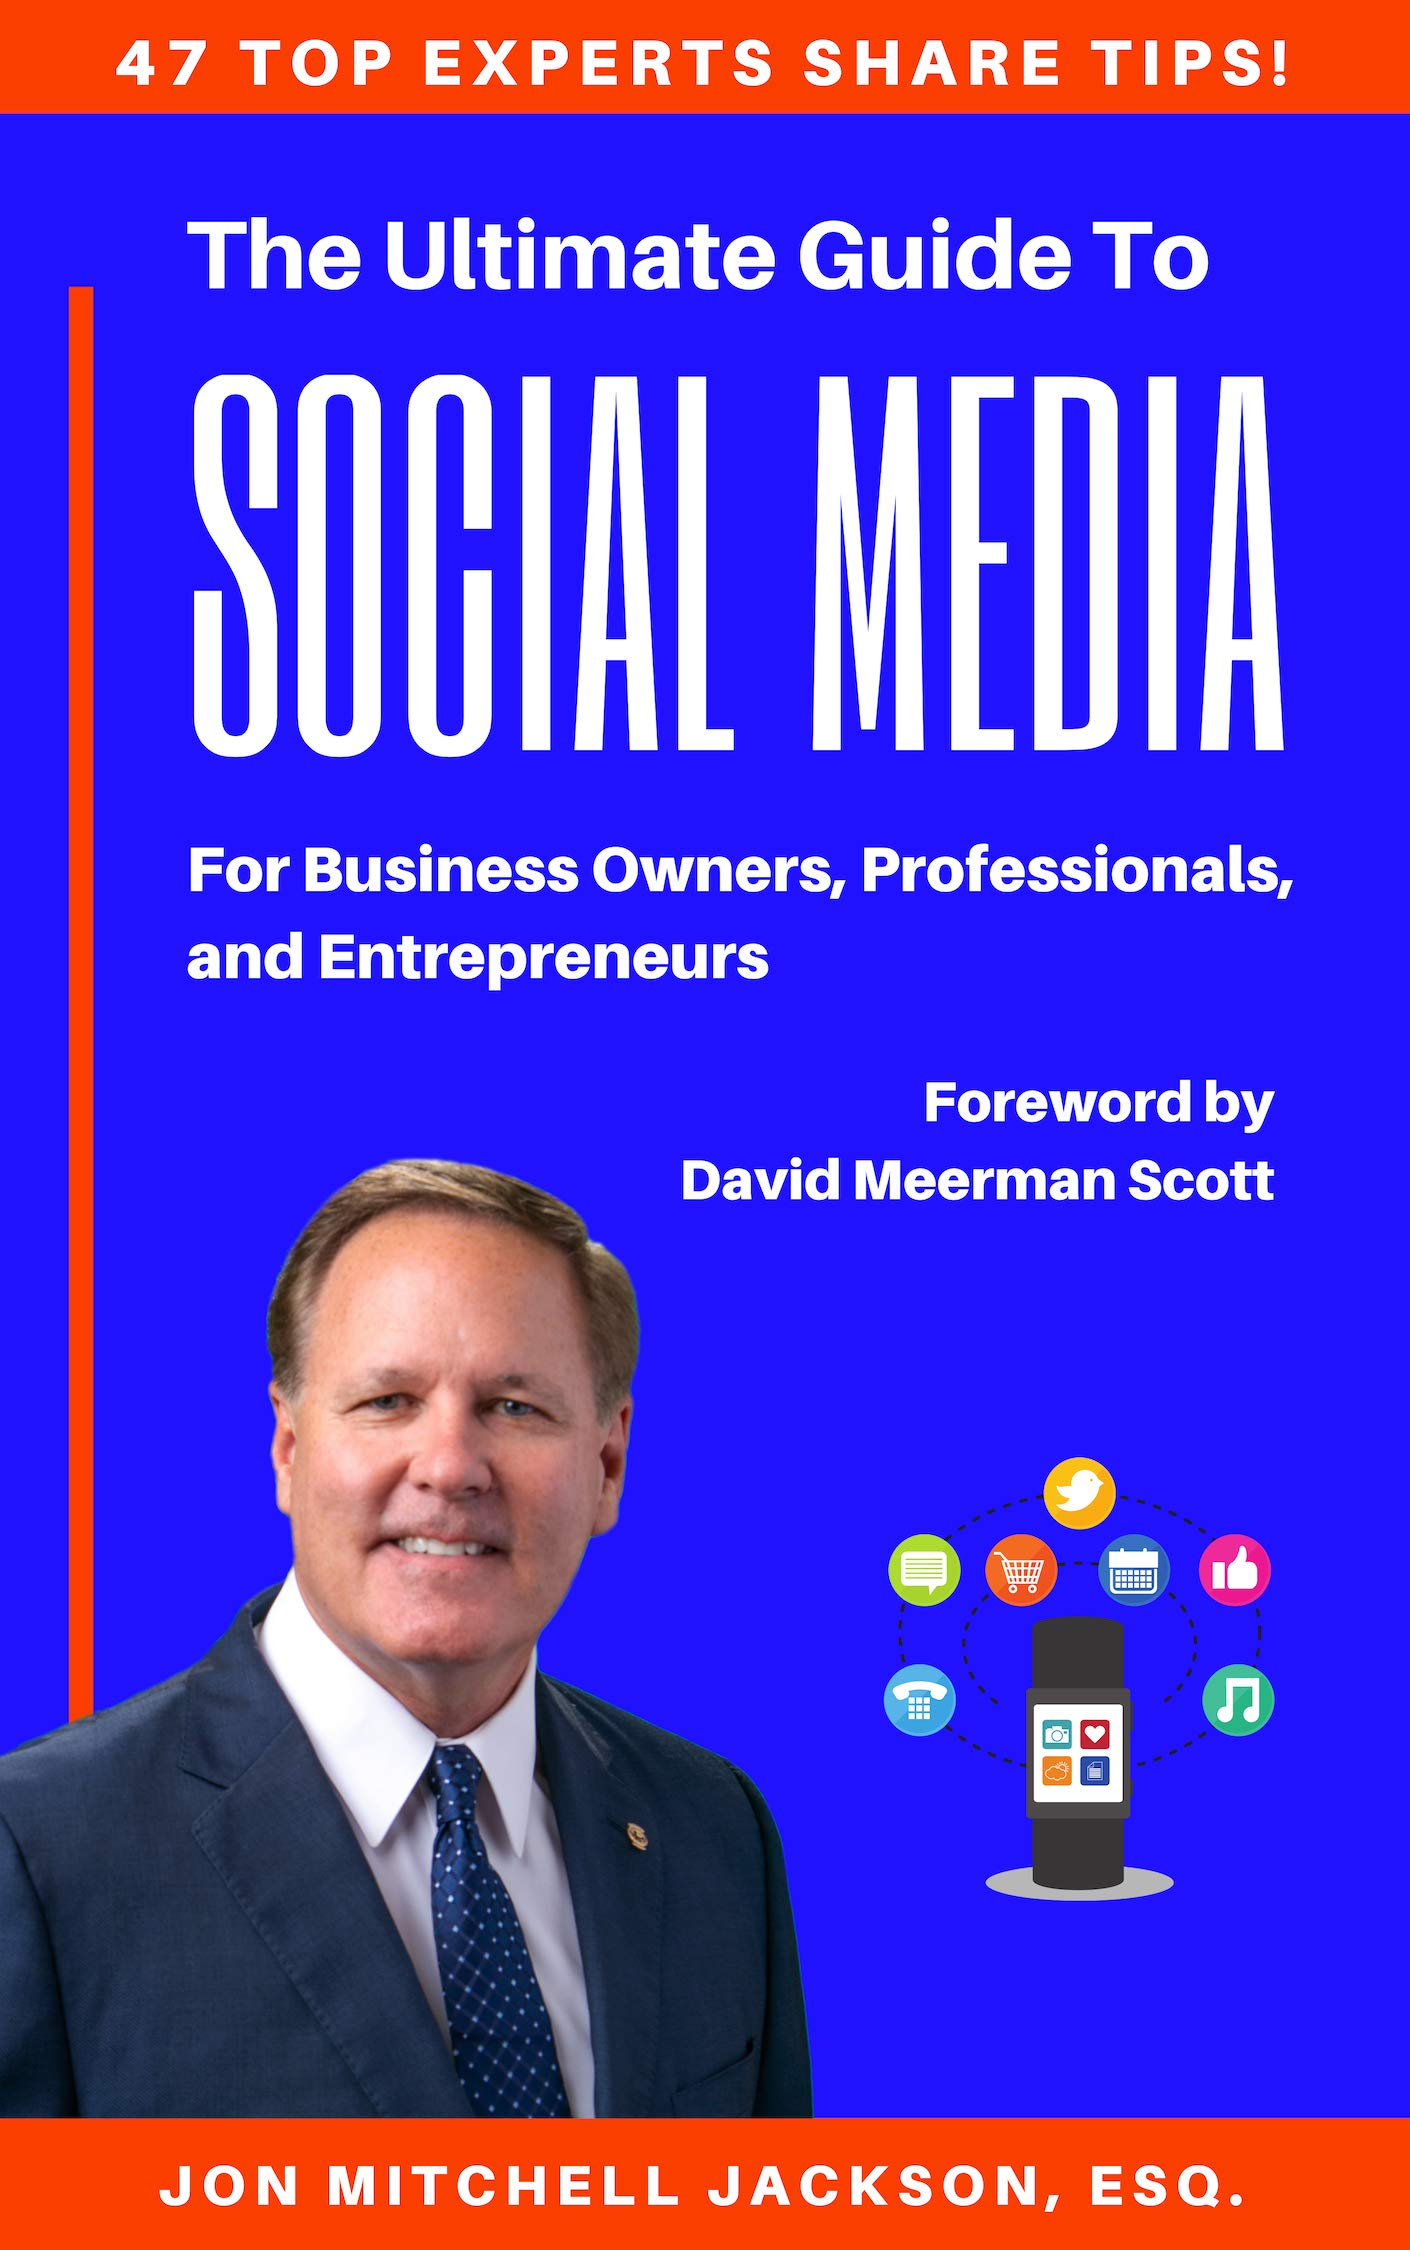 The Ultimate Guide to Social Media For Business Owners, Professionals, and Entrepreneurs